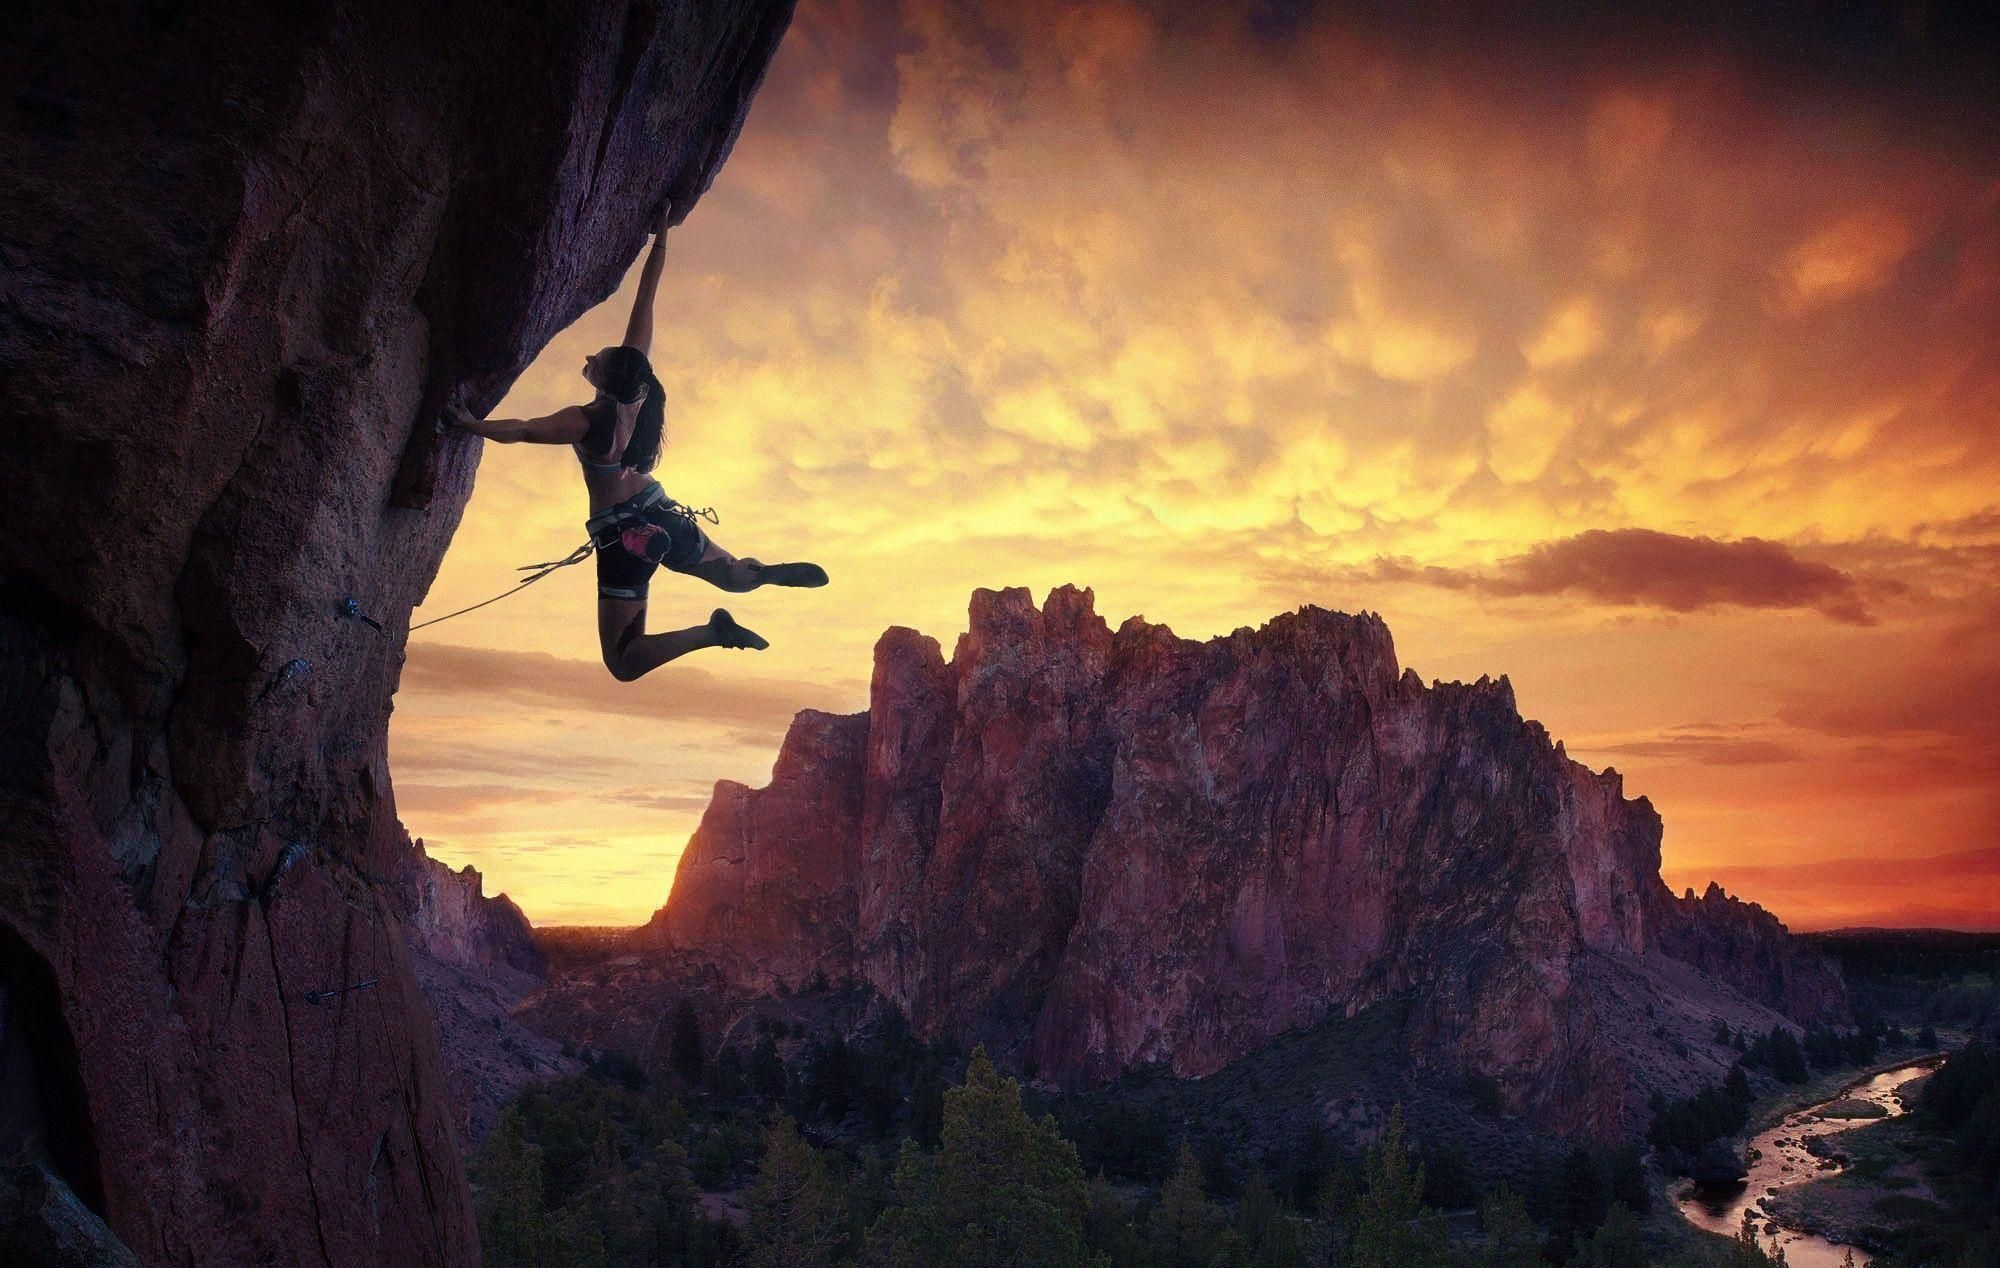 Rock Climbing Desktop Wallpapers   Top Rock Climbing Desktop 2000x1268